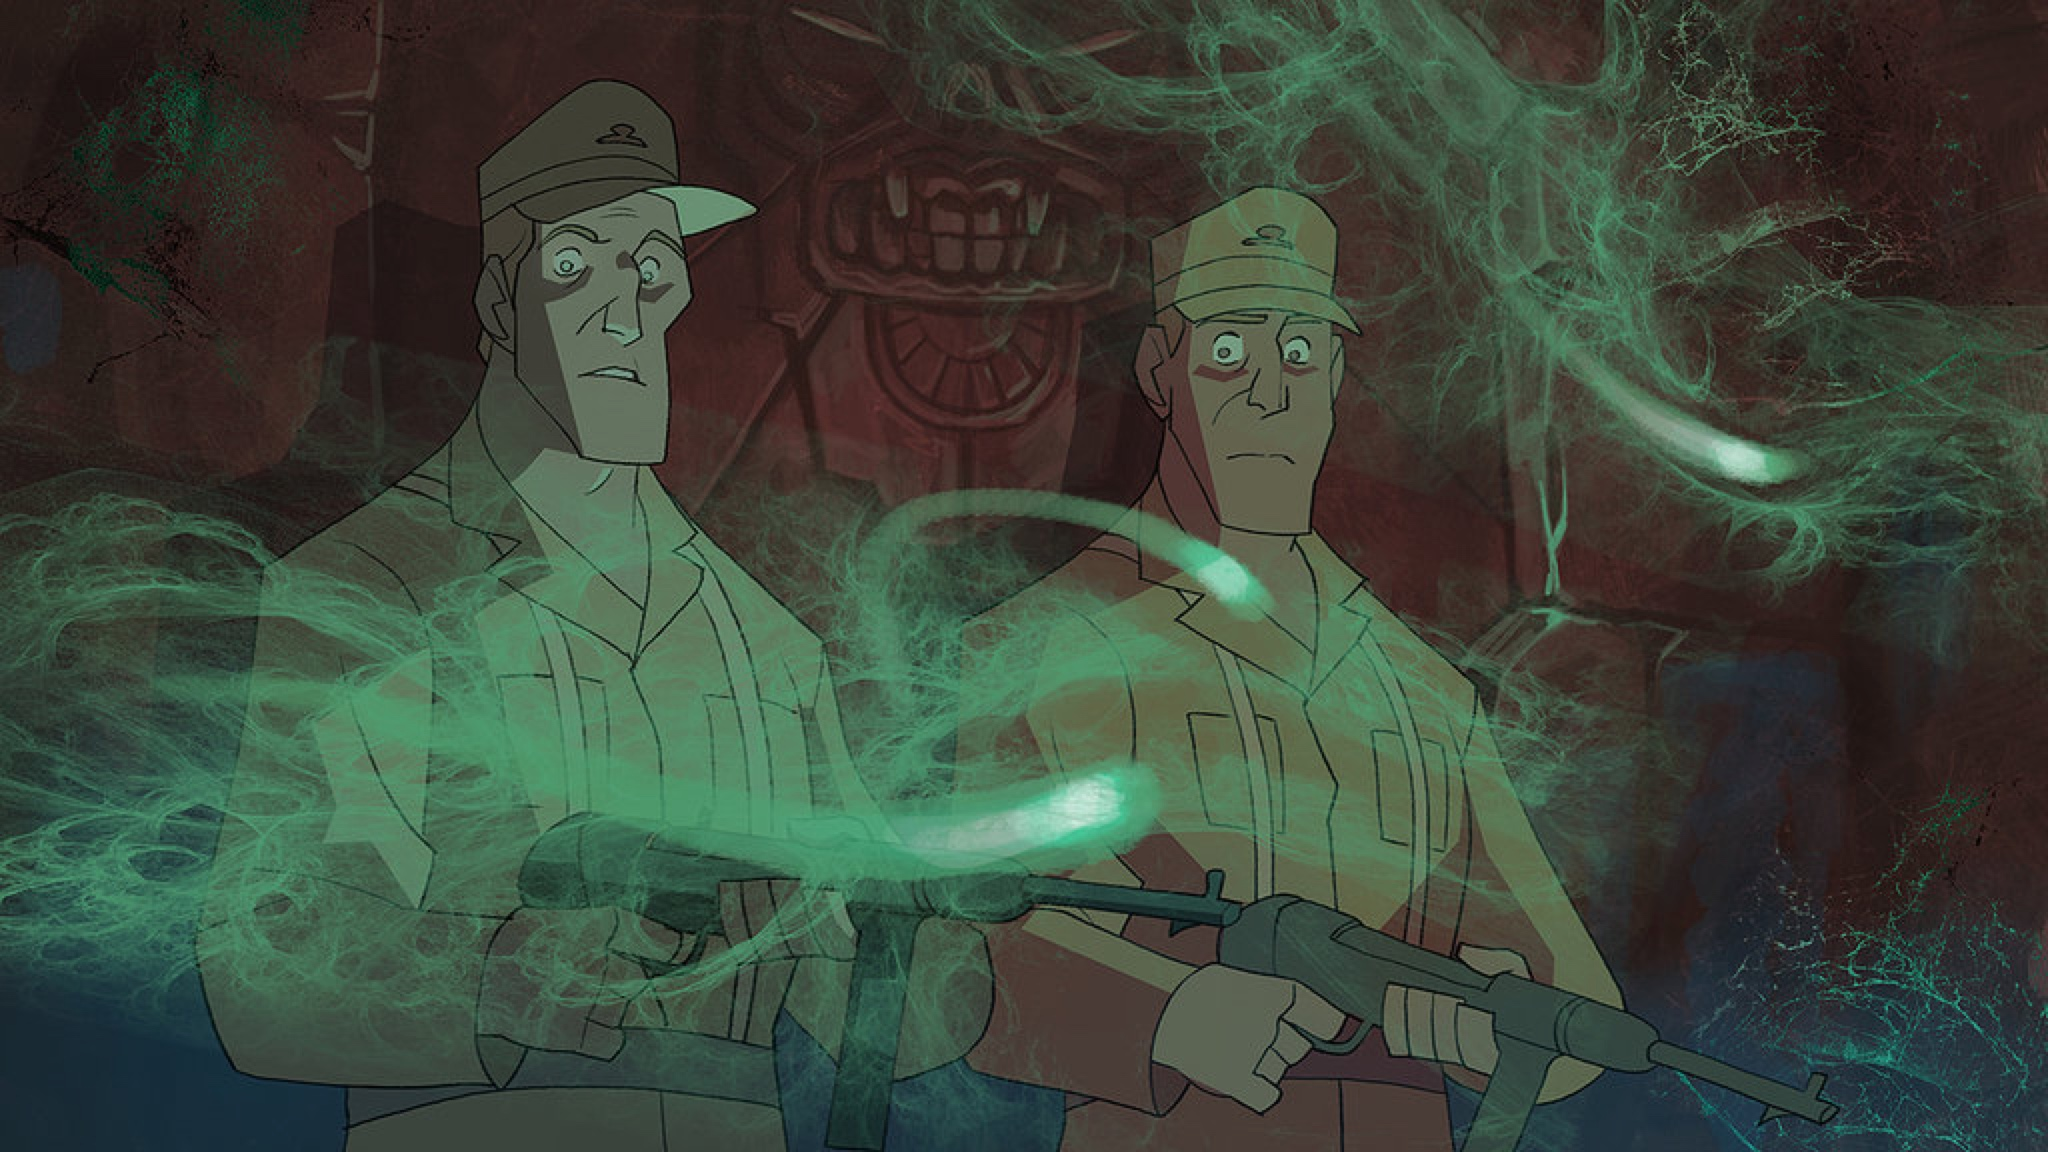 ZZ4001B4C8 Indiana Jones animated fan film coming later this month